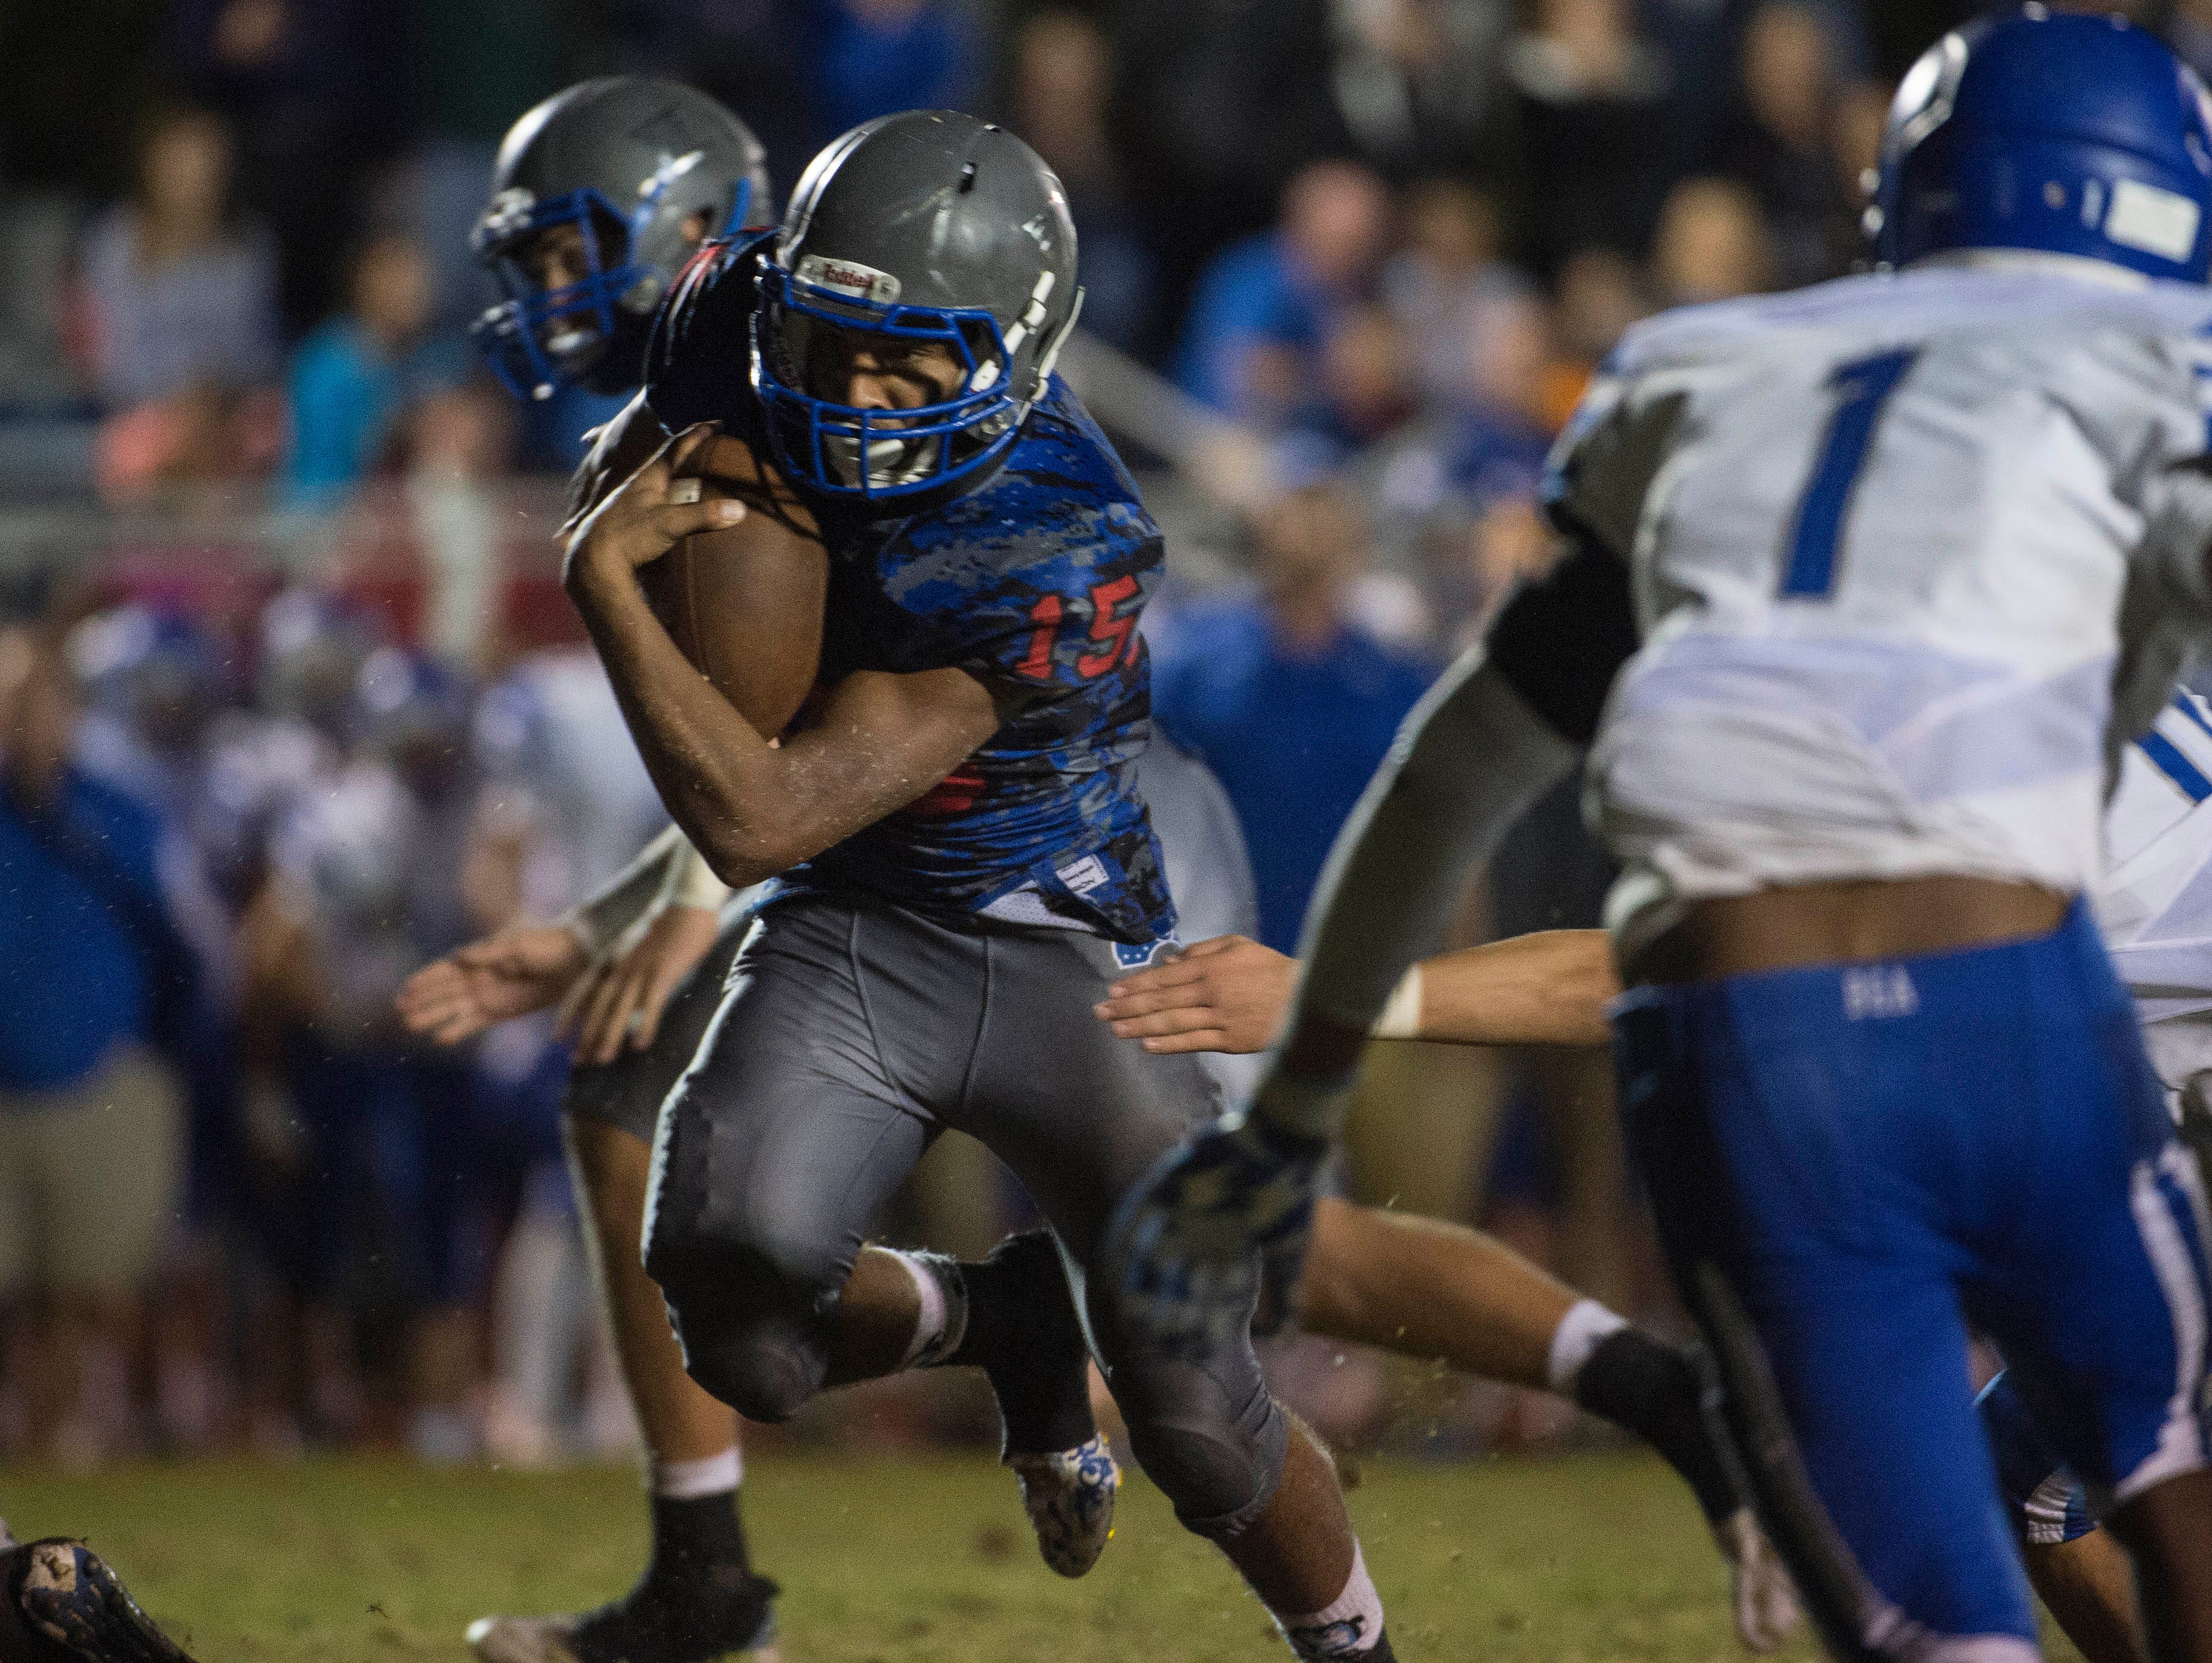 Michael Roberts runs in for a touchdown in overtime at Page High School on Saturday Sept. 26, 2015, in Franklin in Tenn.